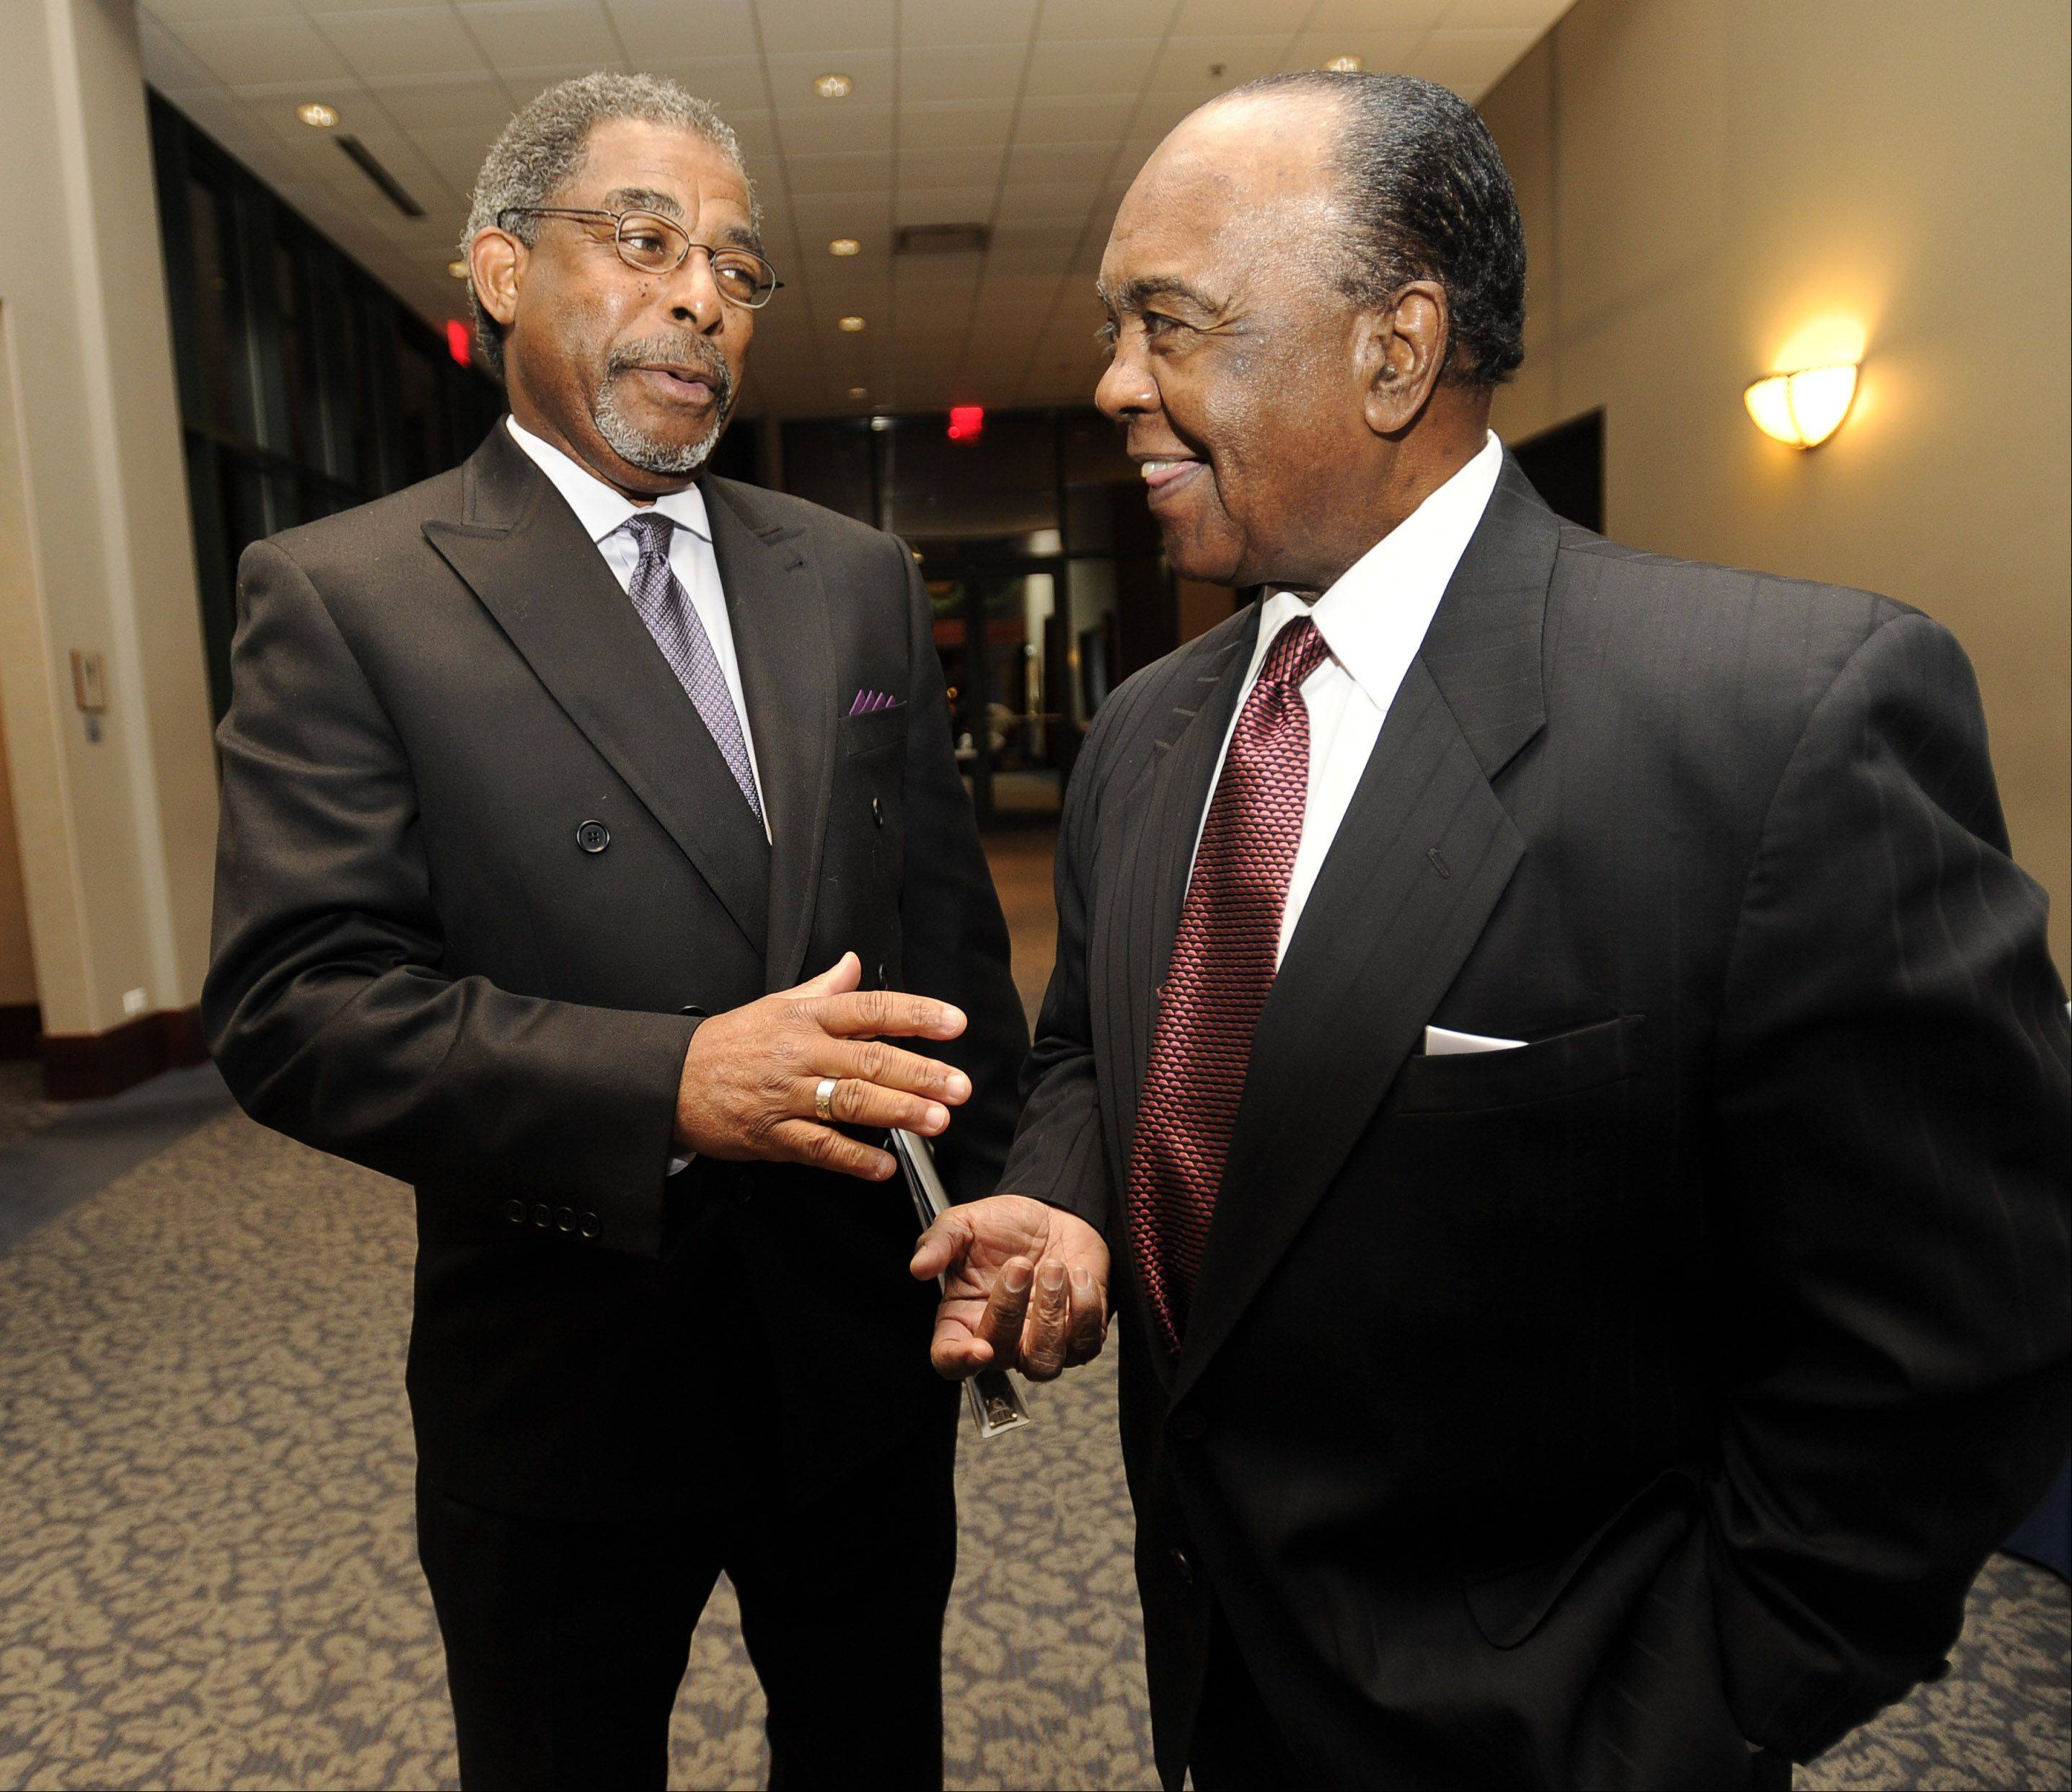 The Rev. Dr. Nathaniel Edmond, pastor of the Second Baptist Church of Elgin speaks with the Rev. Clyde Brooks, right, at a previous celebration of the life, work and birthday of Martin Luther King in Hoffman Estates.